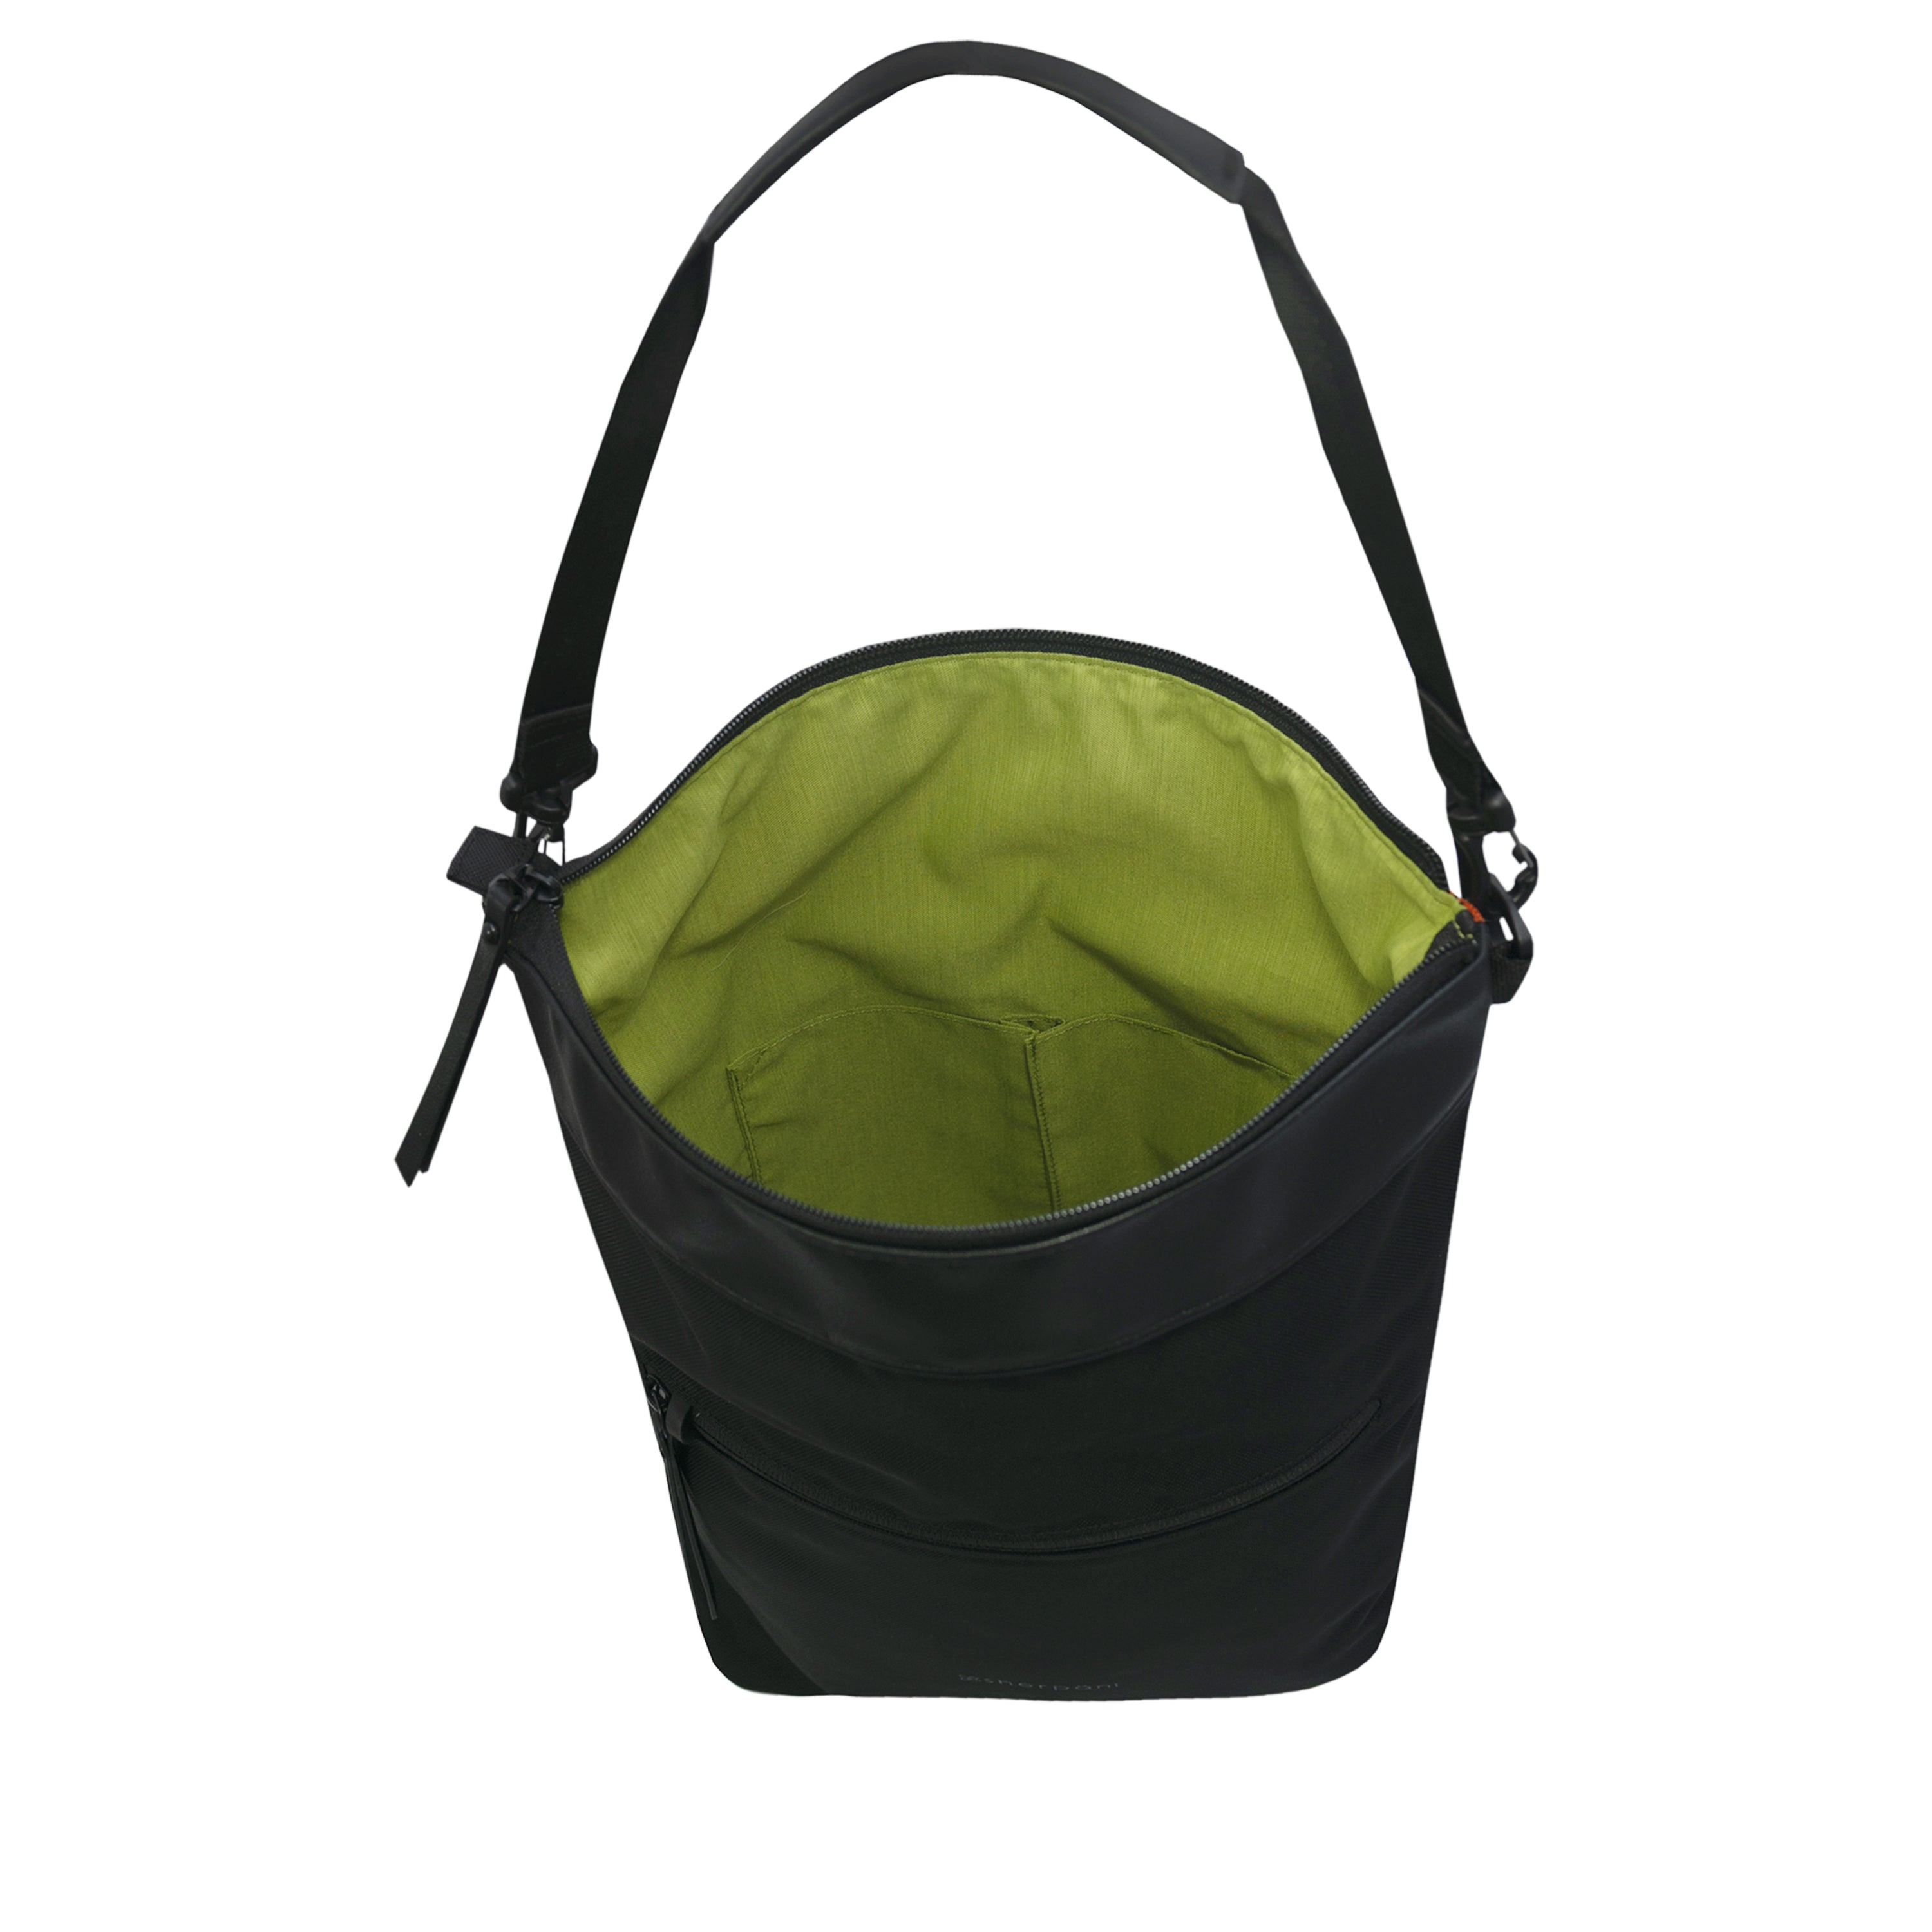 Black Anti Theft Reversible Crossbody (interior main zipper compartment) with anti-theft features